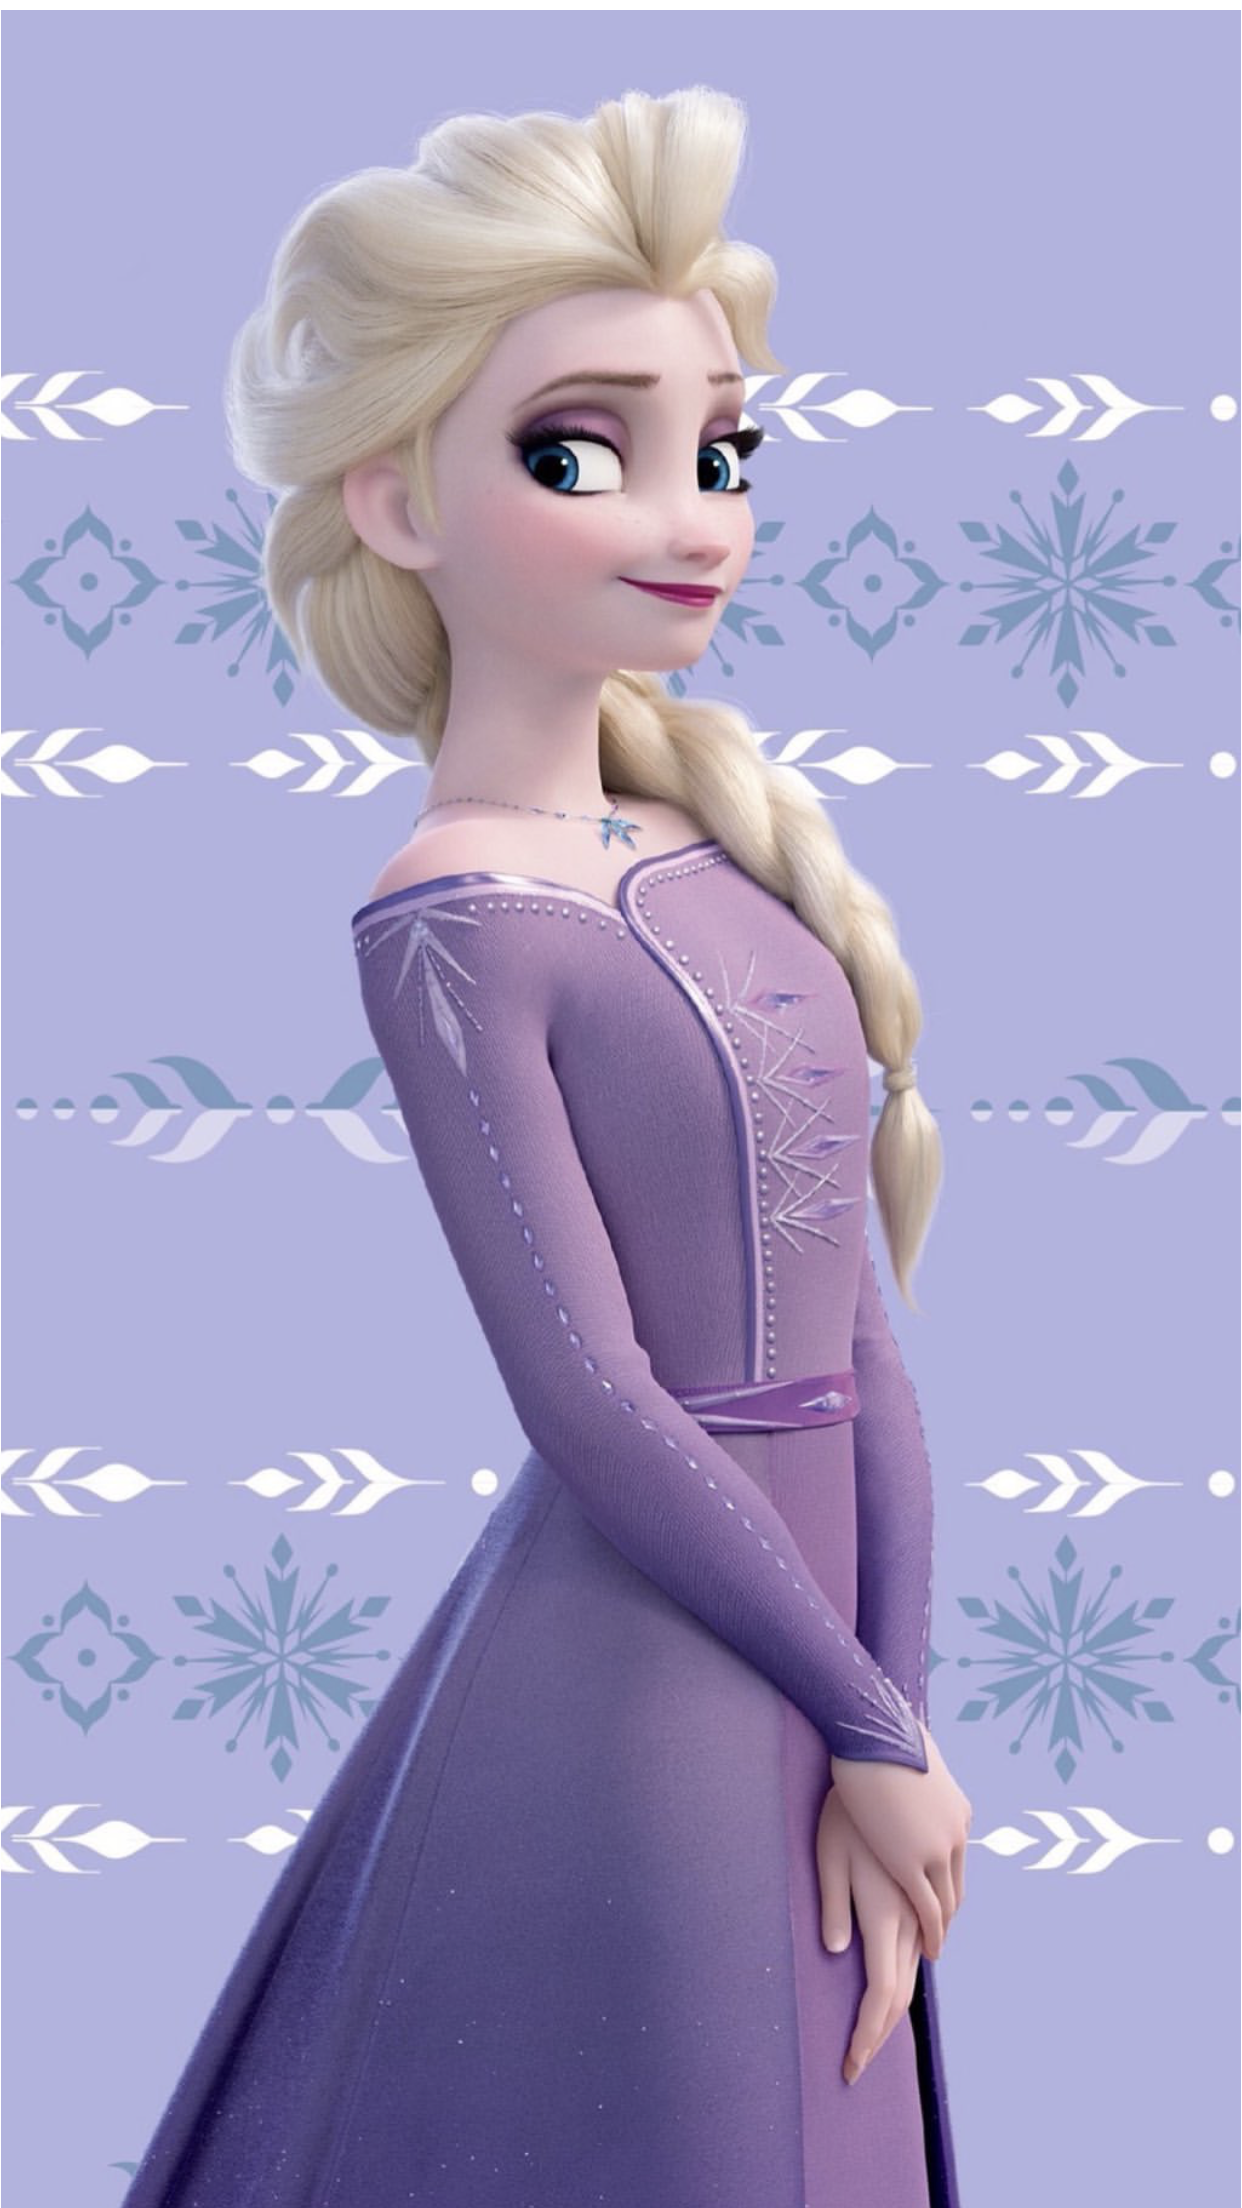 Regal Wallpaper Elsa In 2020 Disney Princess Frozen Disney Princess Pictures Disney Princess Elsa